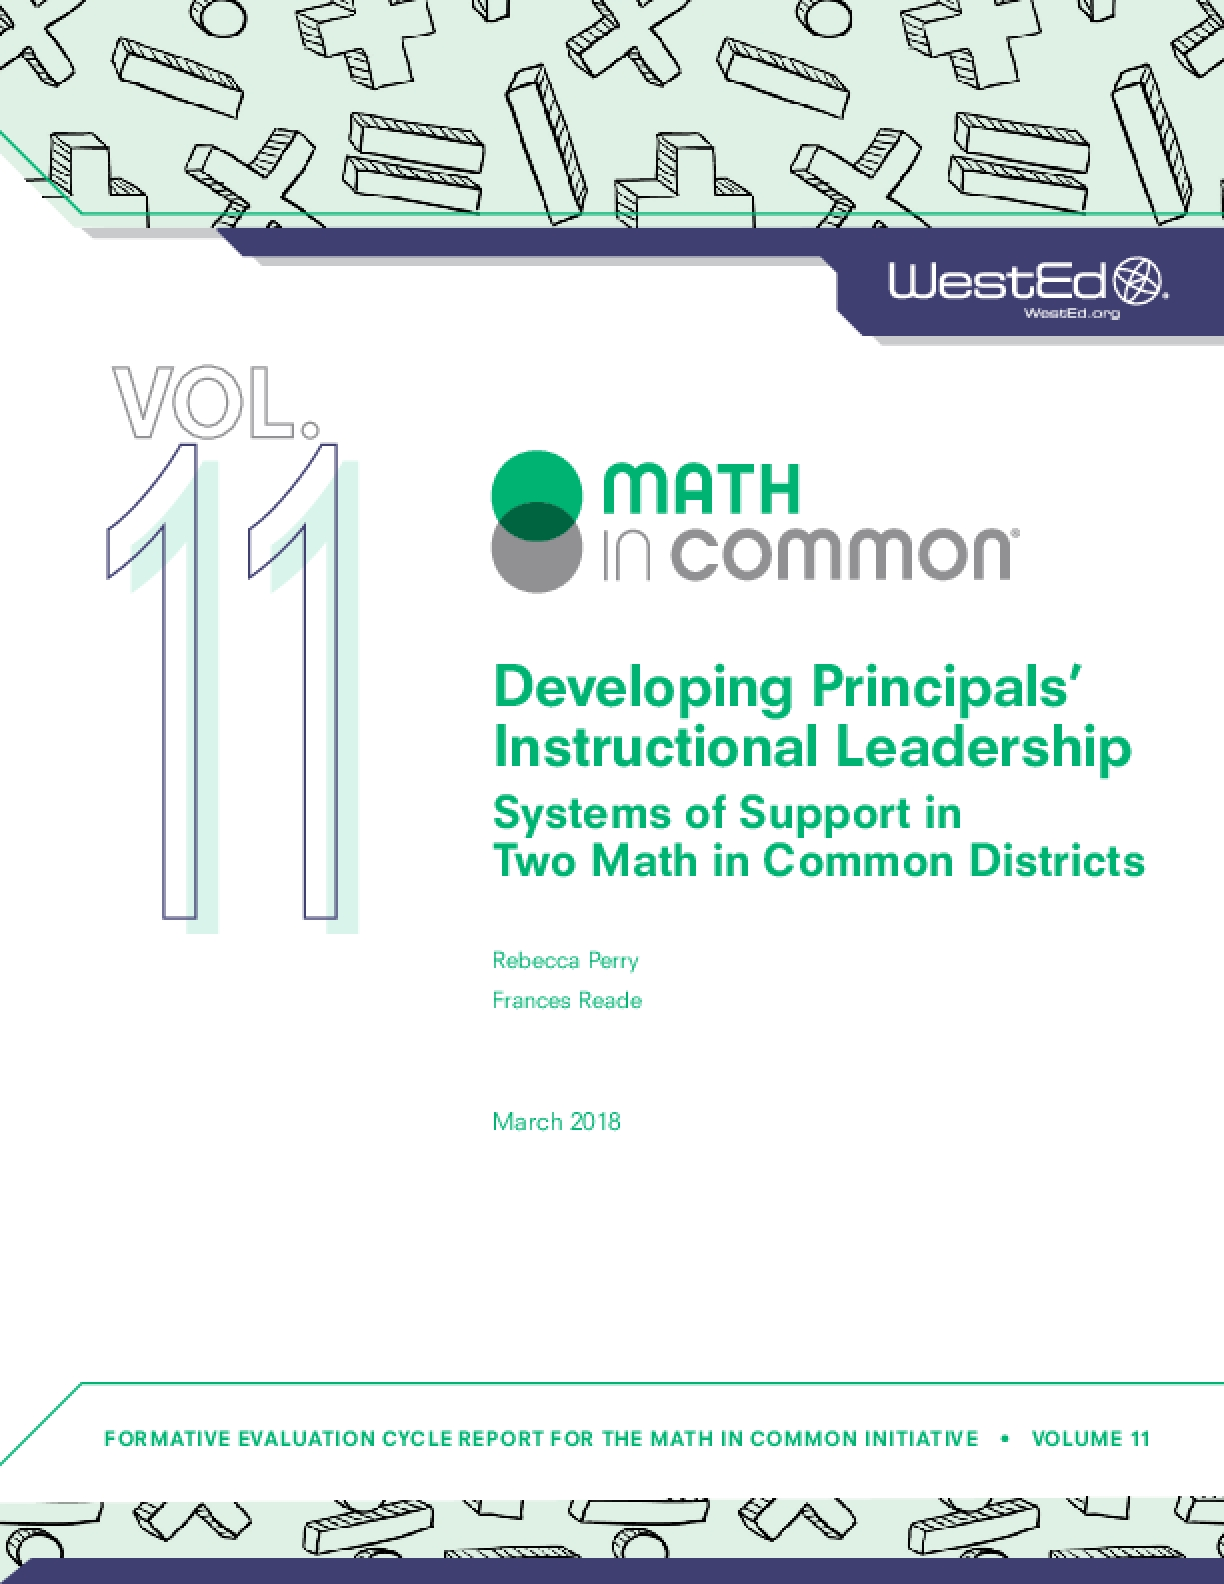 Developing Principals' Instructional Leadership: Systems of Support in Two Math in Common Districts